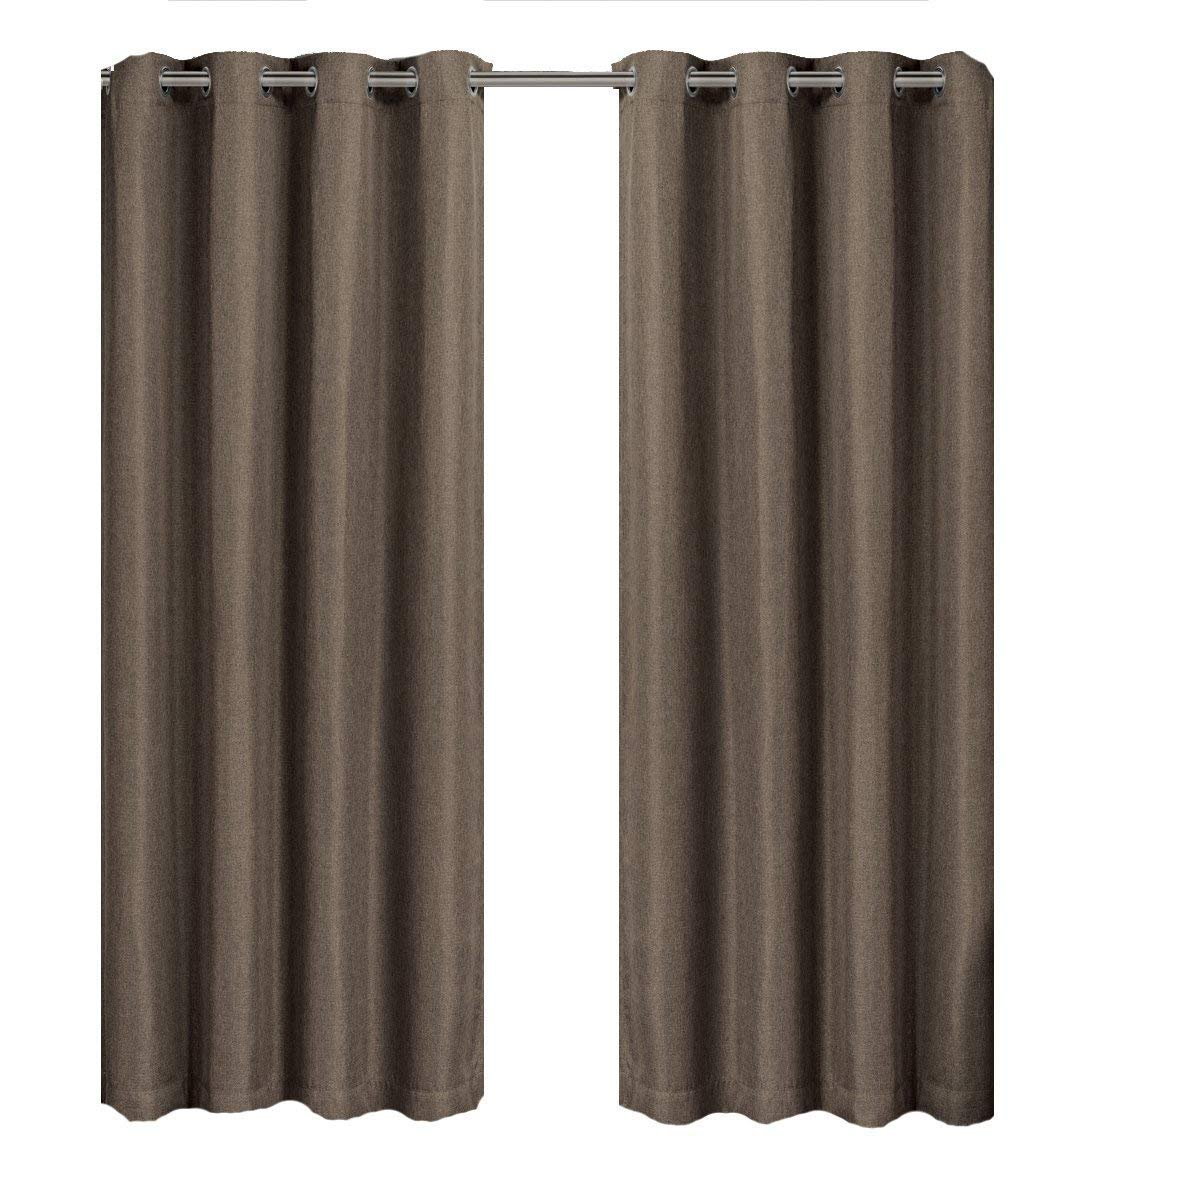 Gulfport Taupe Grommet Faux Linen Blackout Weave Window Curtains Drape, 52x96 inches Single Panel, by Royal Hotel